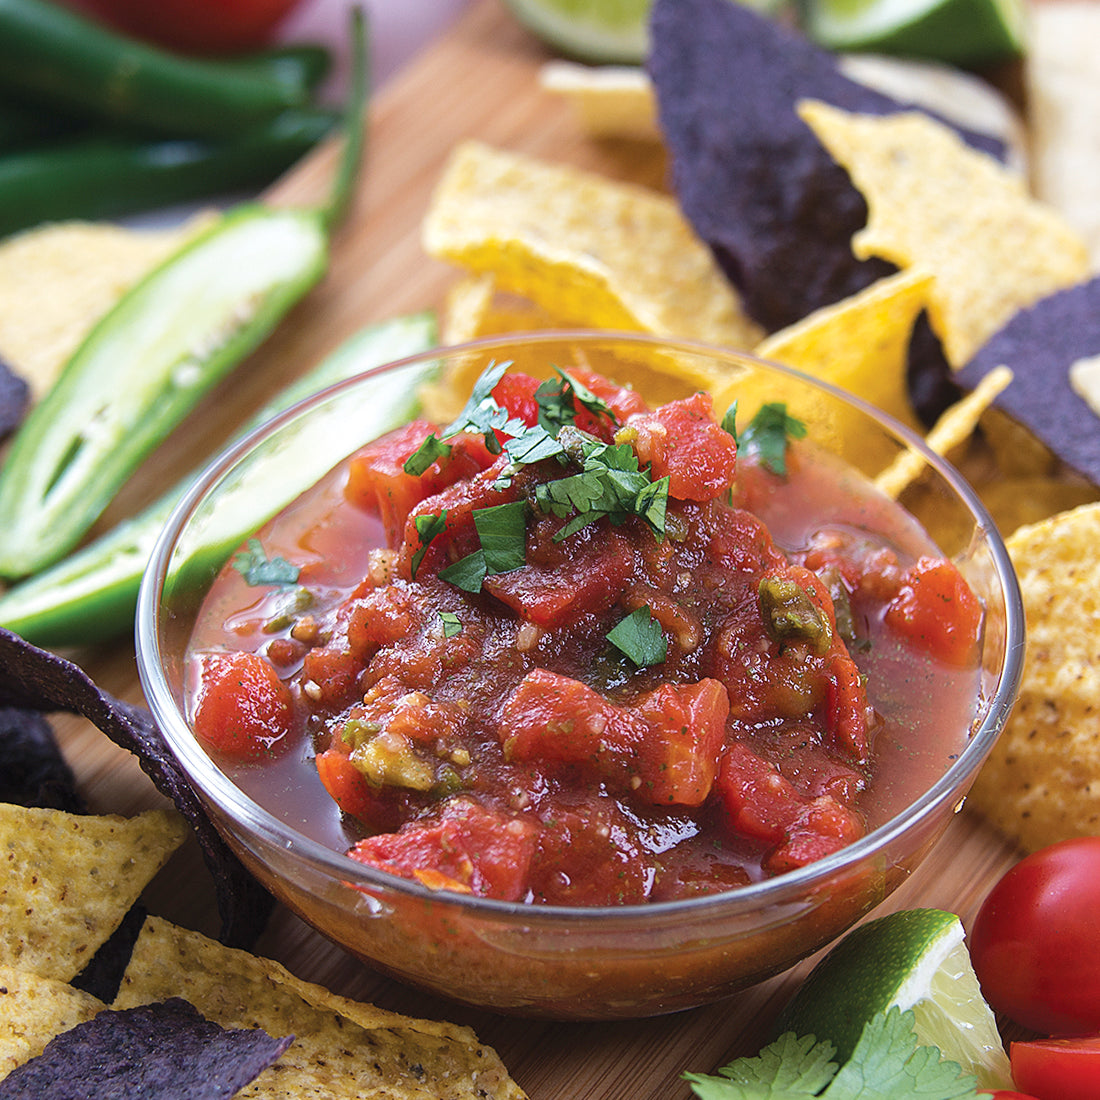 Garden Fresh Salsa Dip mixed with petite tomatoes and served with tortilla chips.